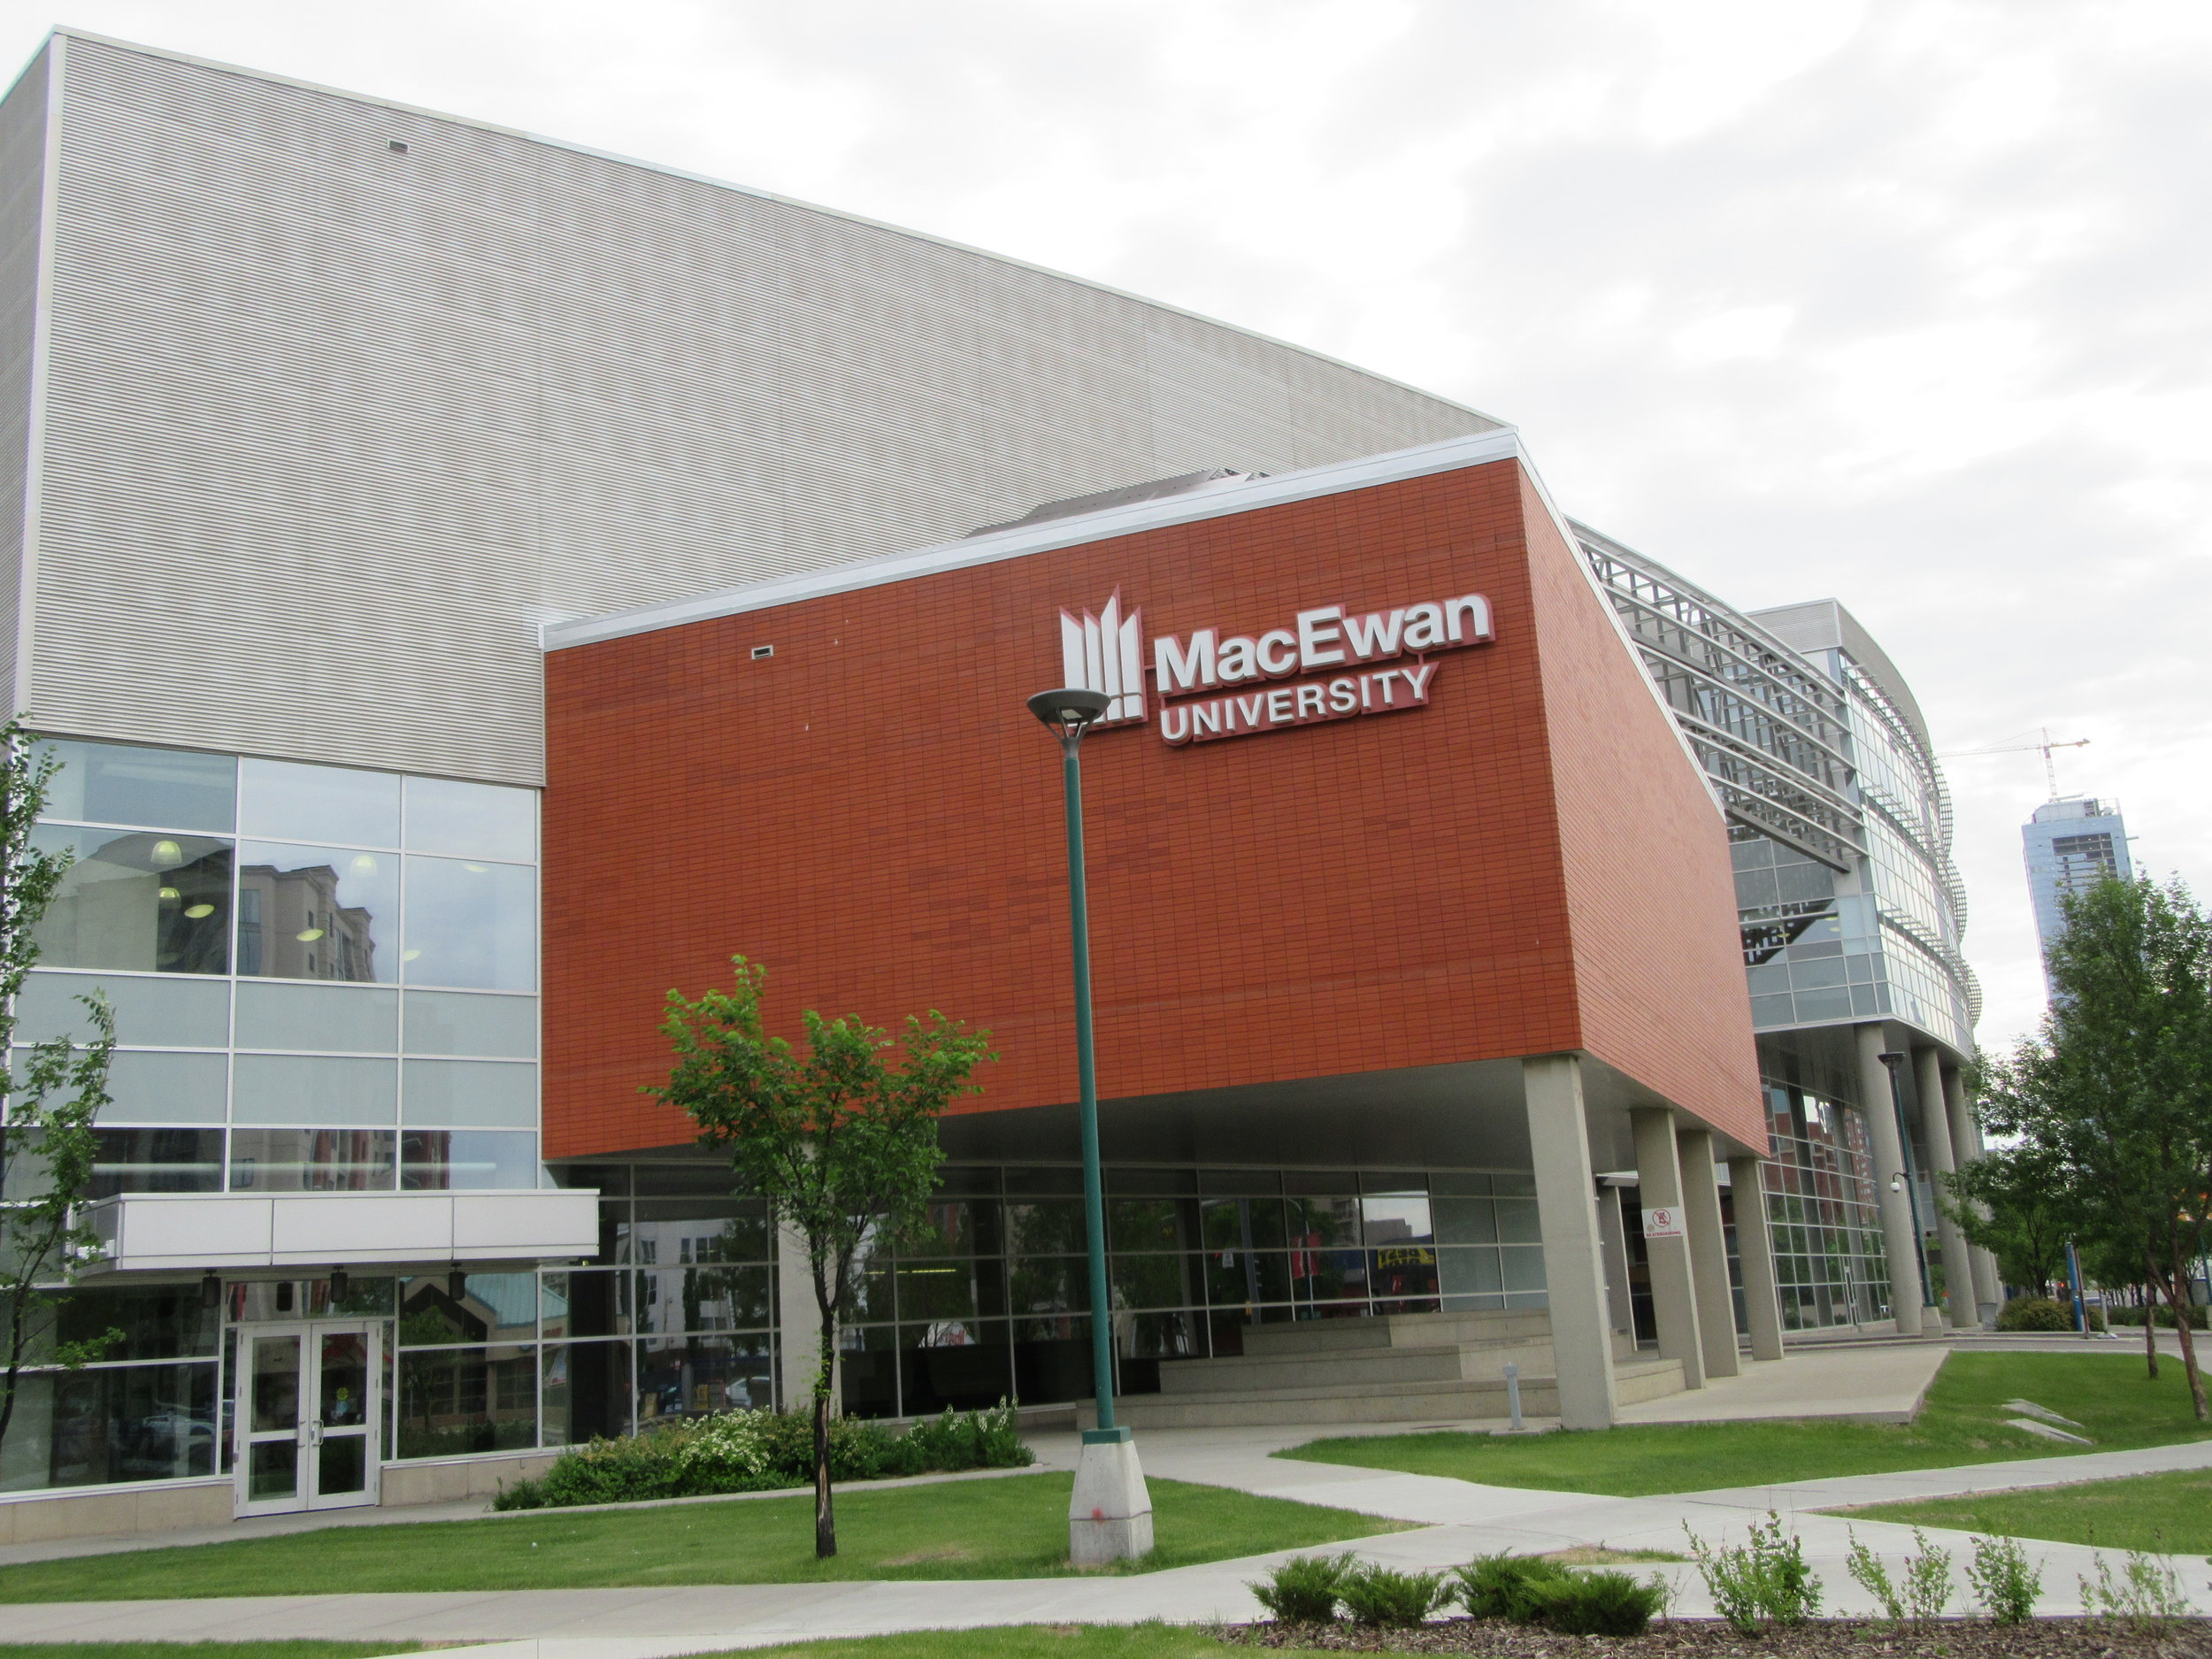 Entrance to MacEwan University, the host of the 2018 CCMTS AGM and Conference.